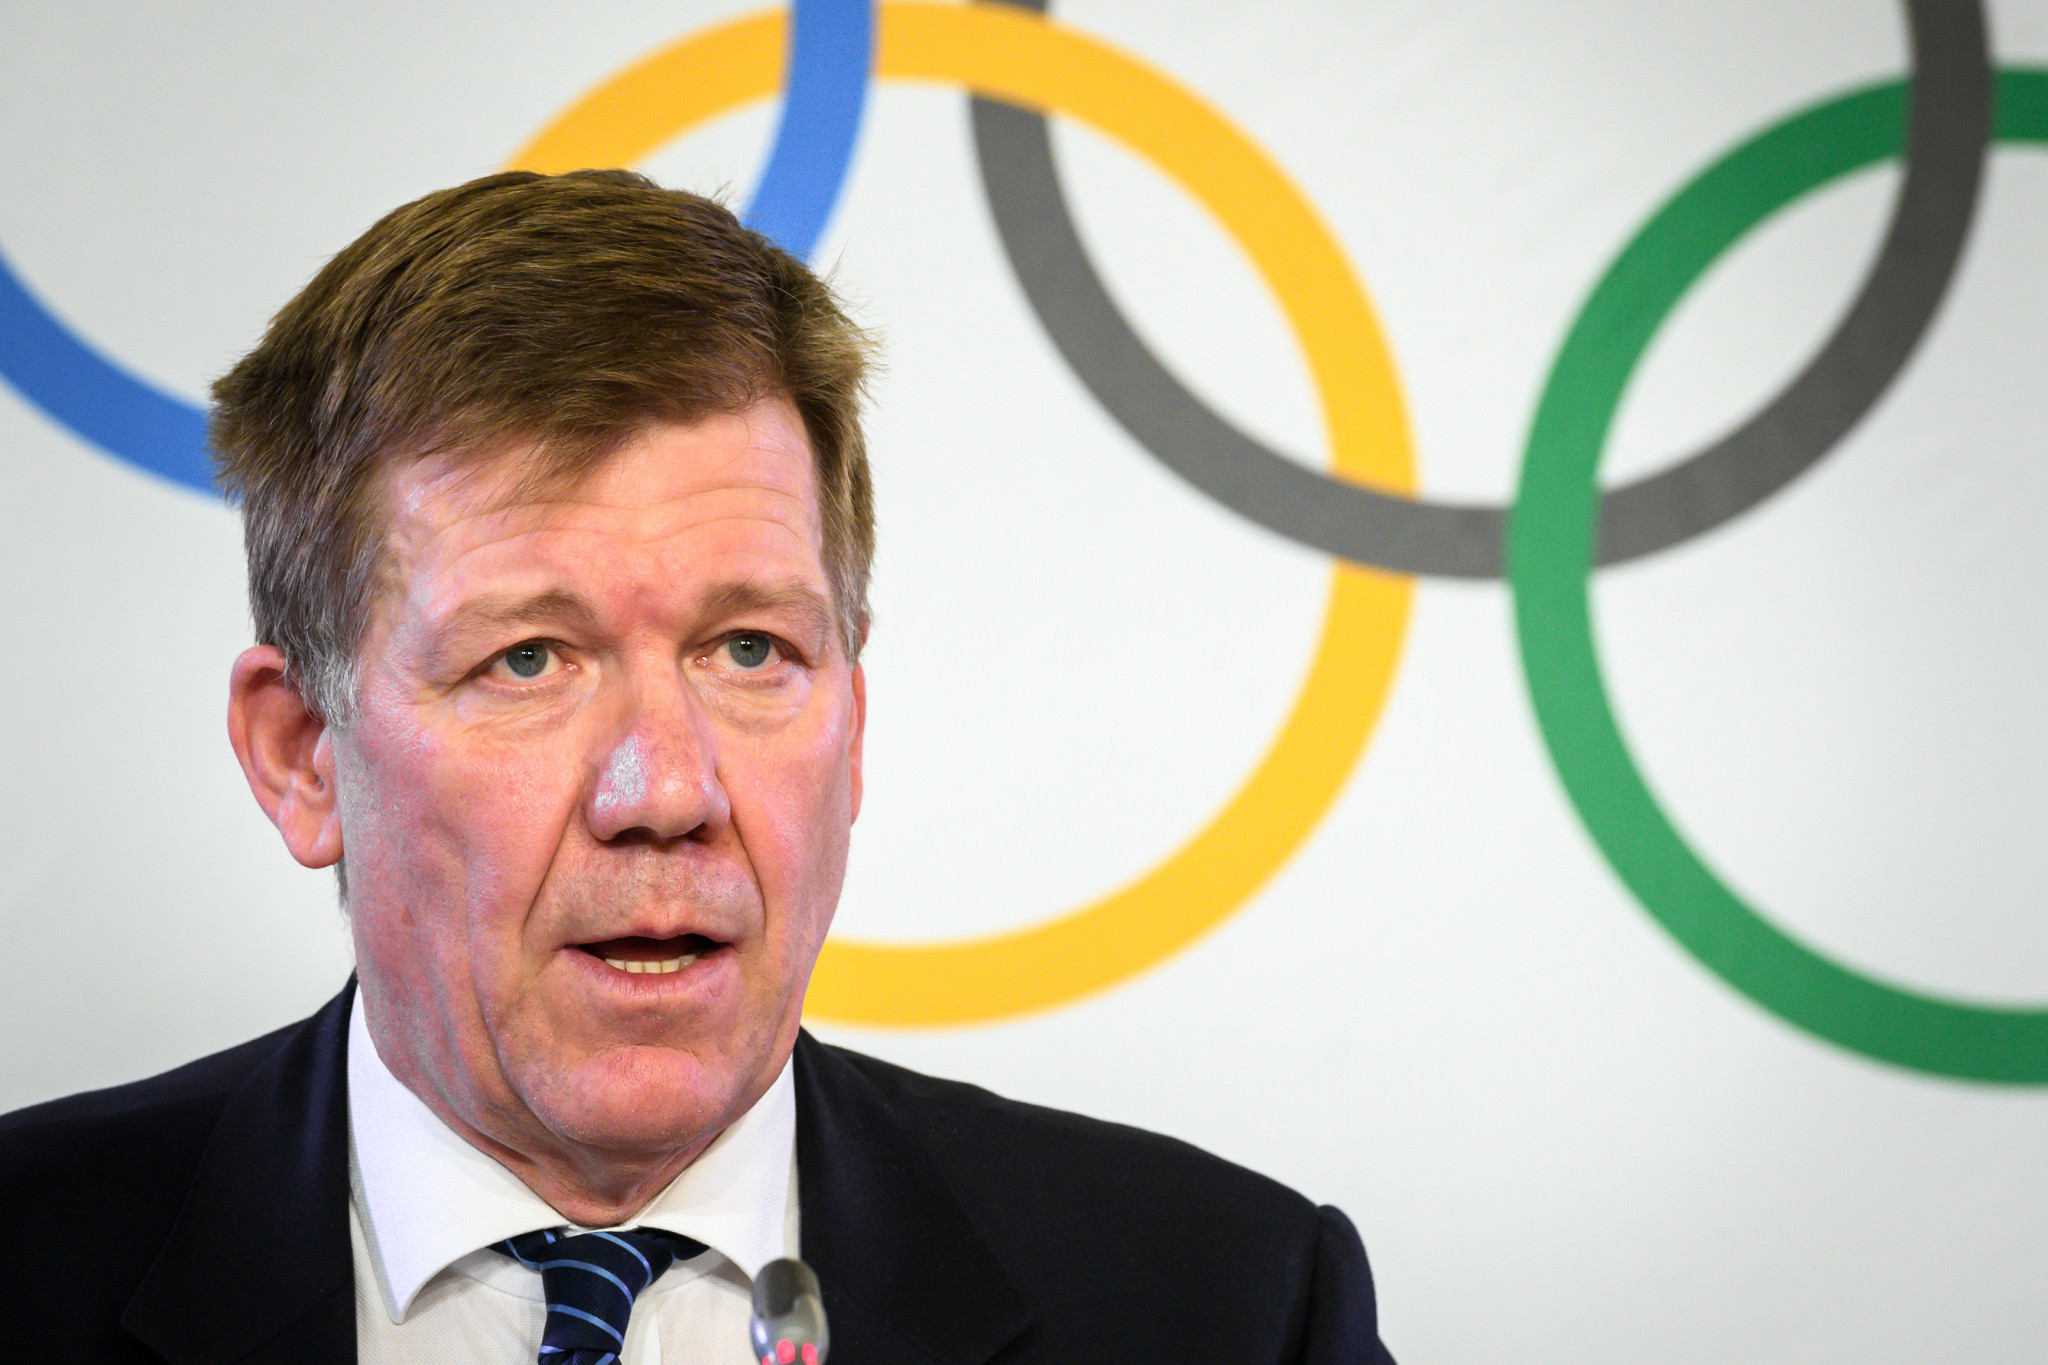 The IOC's medical and scientific director Richard Budgett spoke about a coronavirus vaccine during the meetings ©Getty Images